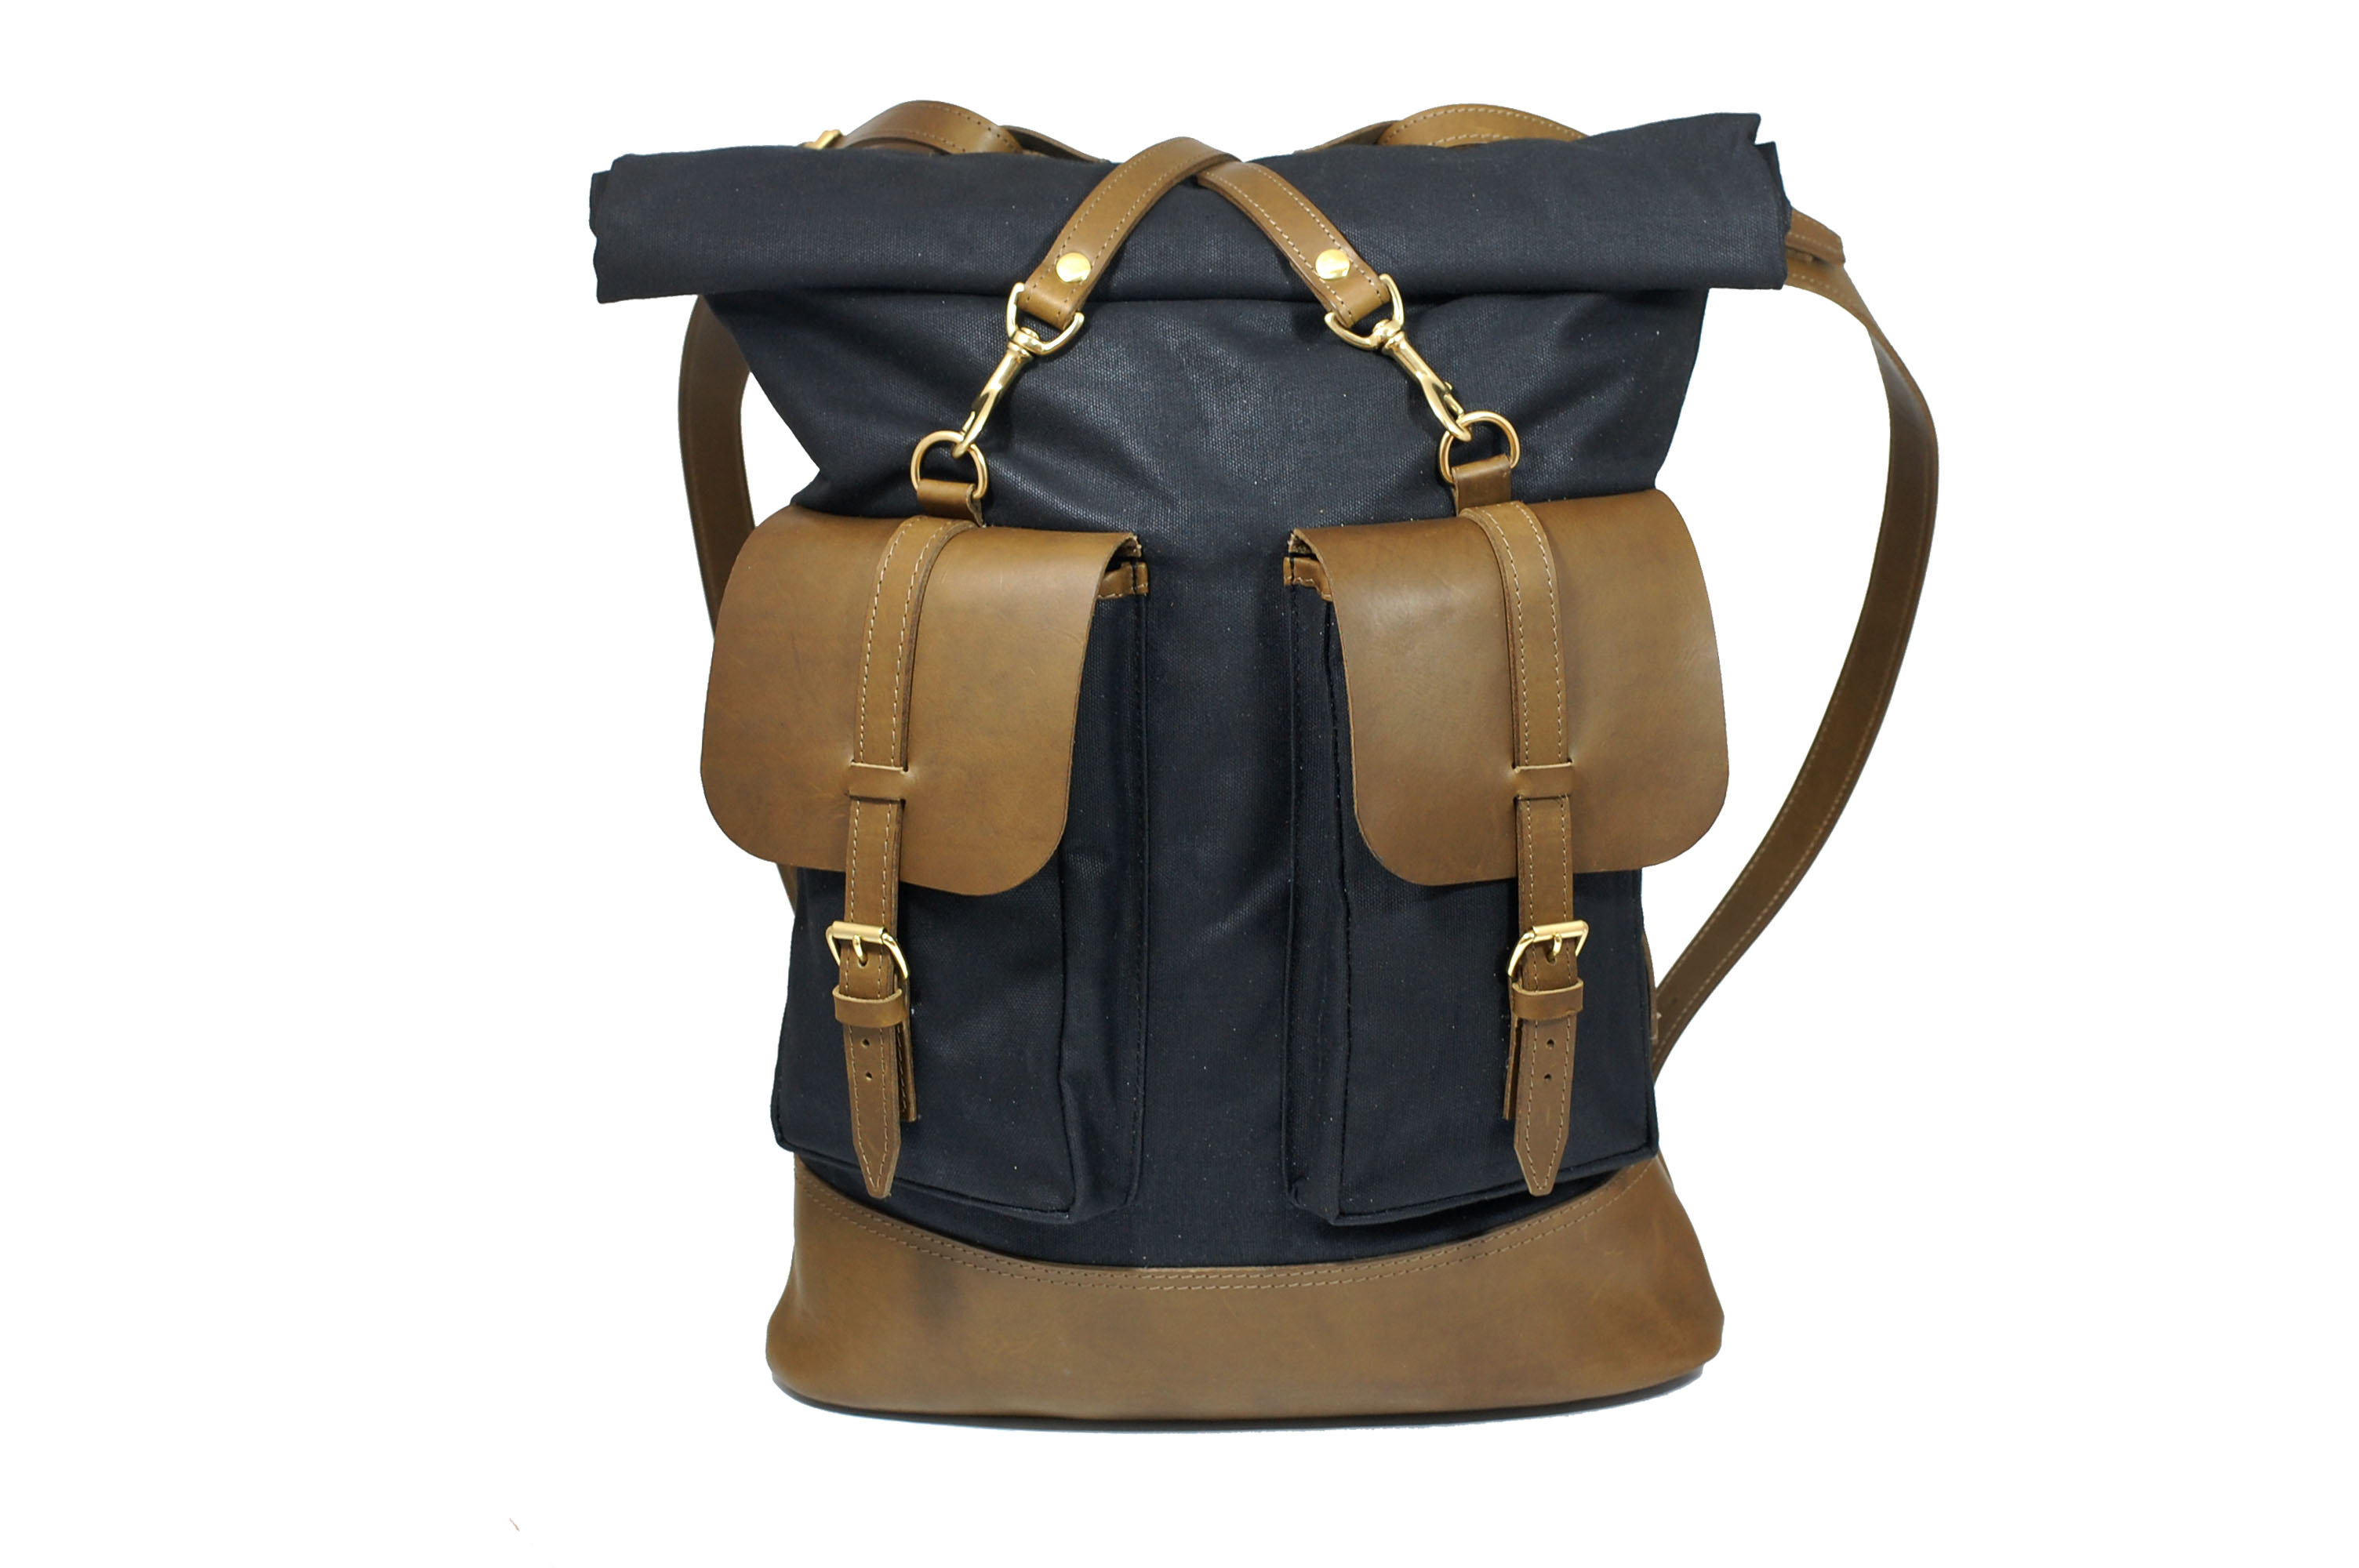 MAHIOUT CANTON BACKPACK NO2, LUXUCRY DESIGNER BAG